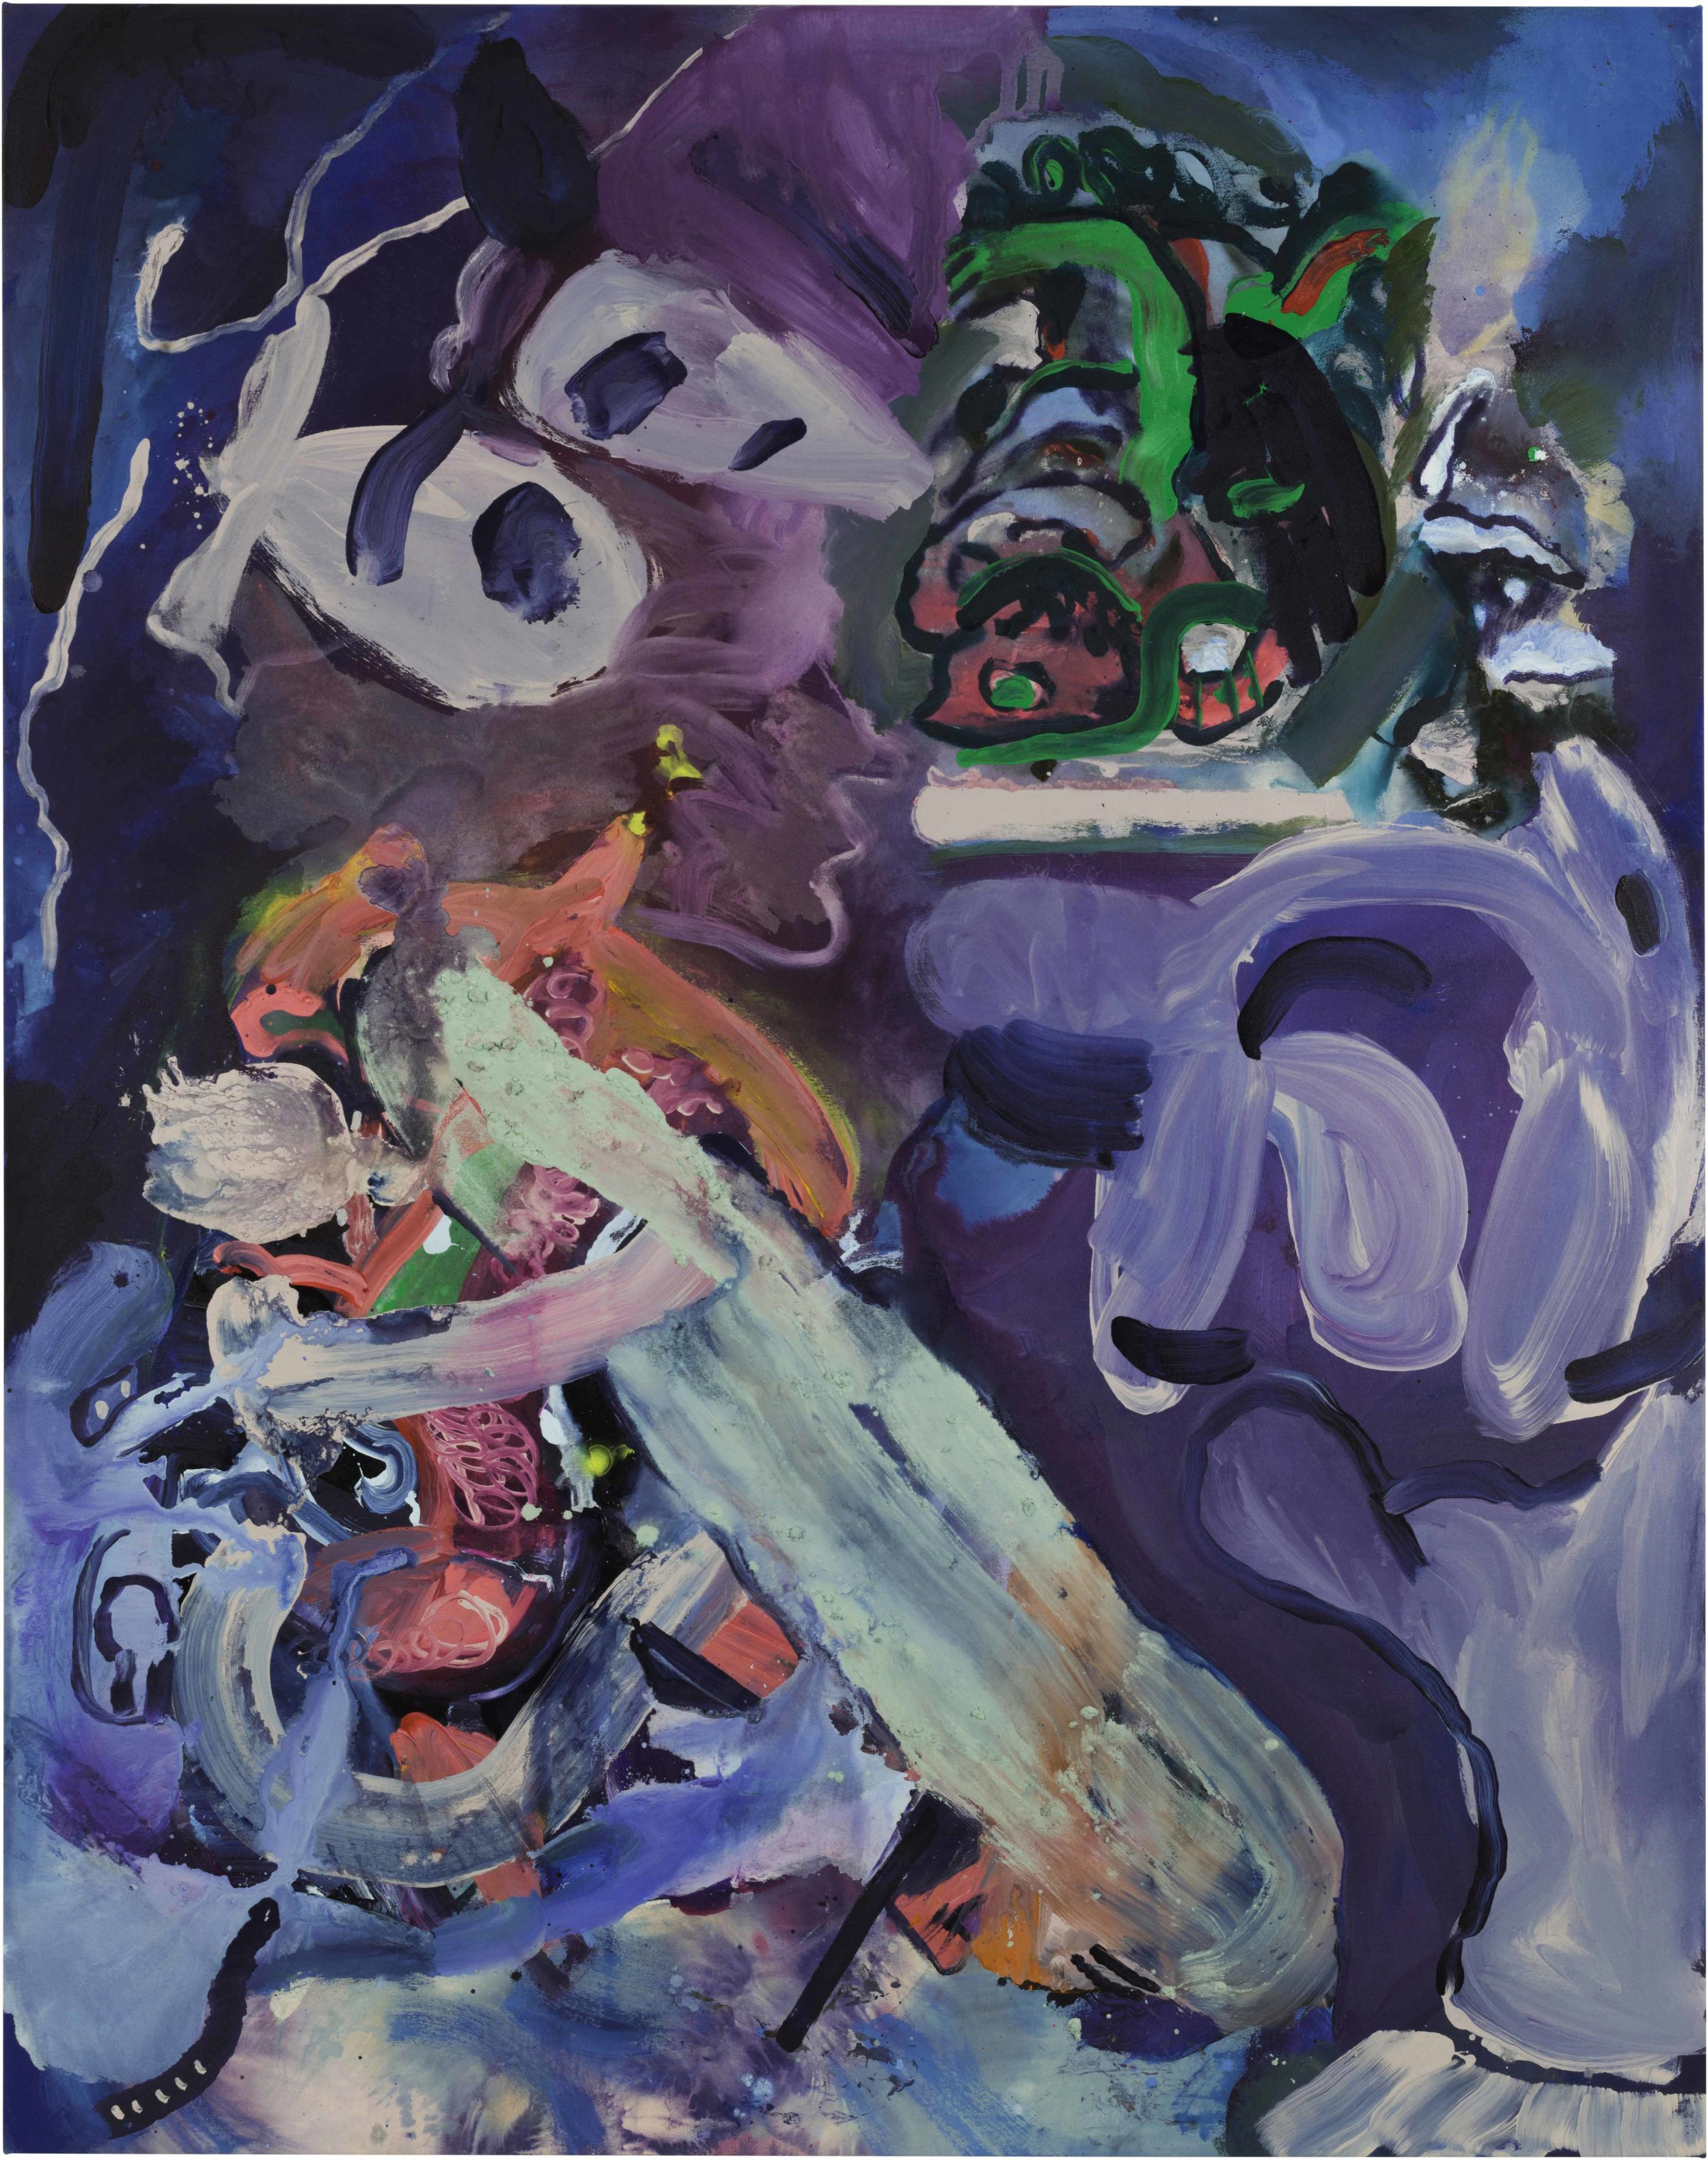 Drew Beattie and Ben Shepard  Primal Scene  2016 acrylic and spray paint on canvas 96 x 76 inches